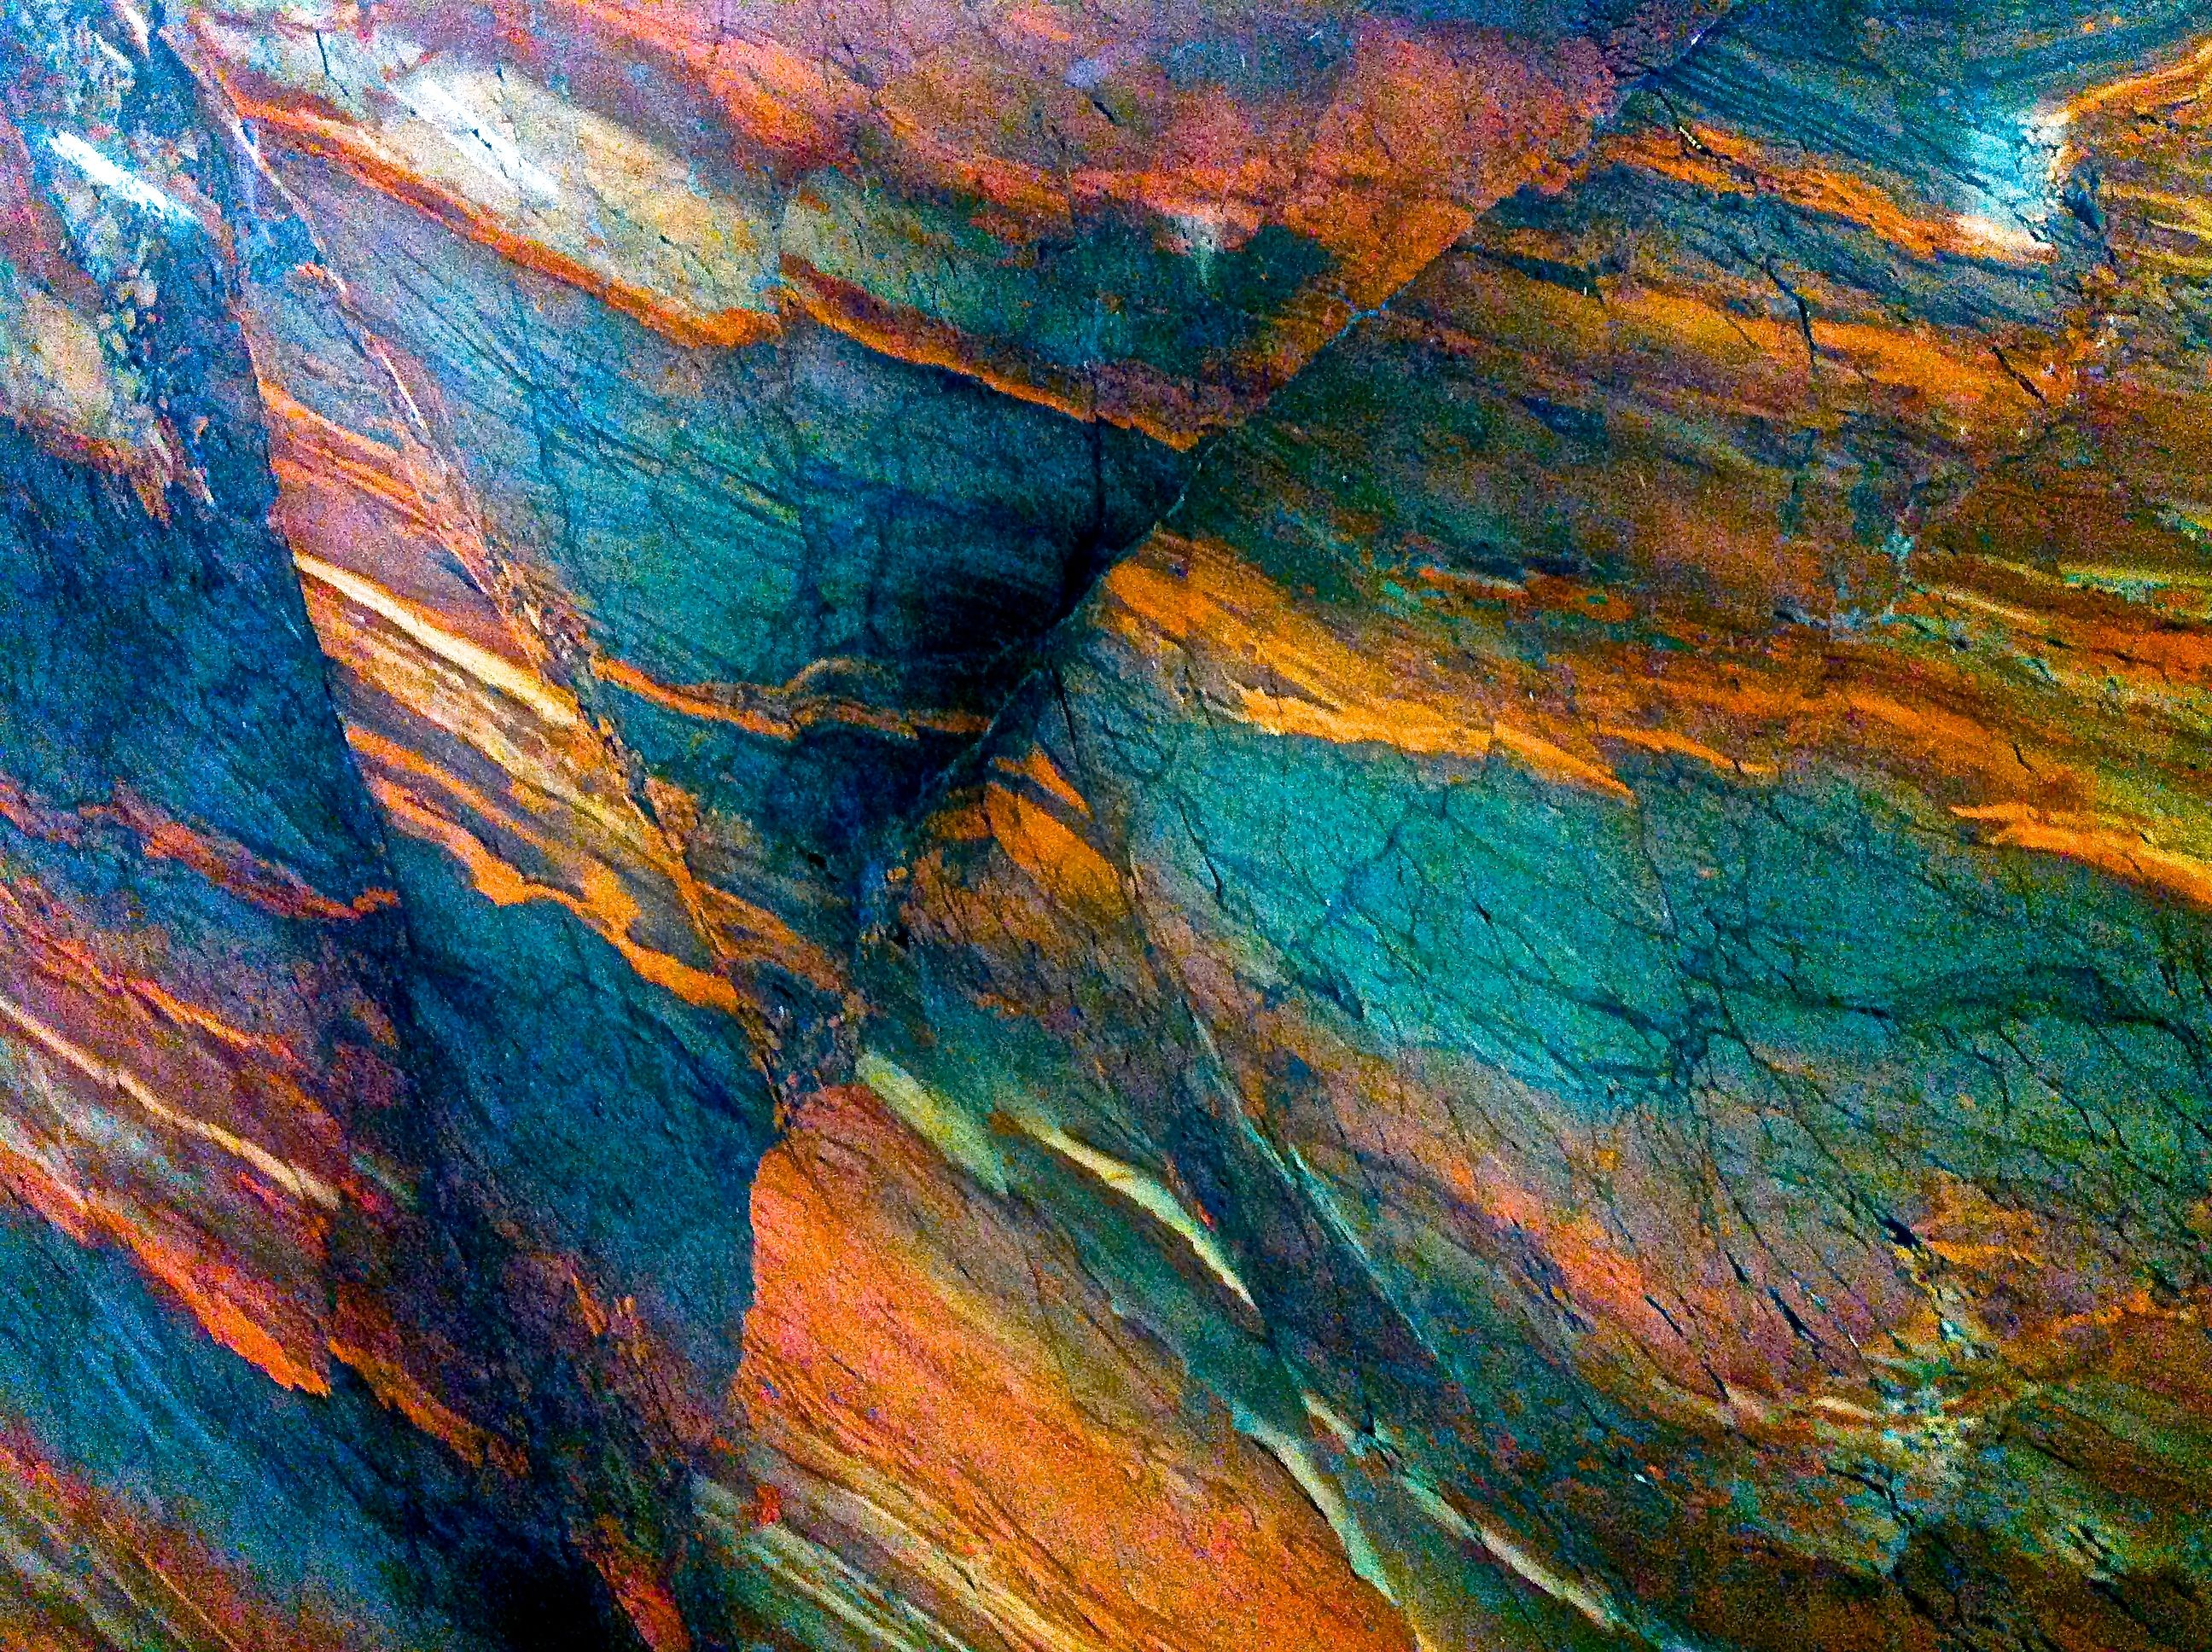 Another Crazy Beautiful Granite Slab Pattern